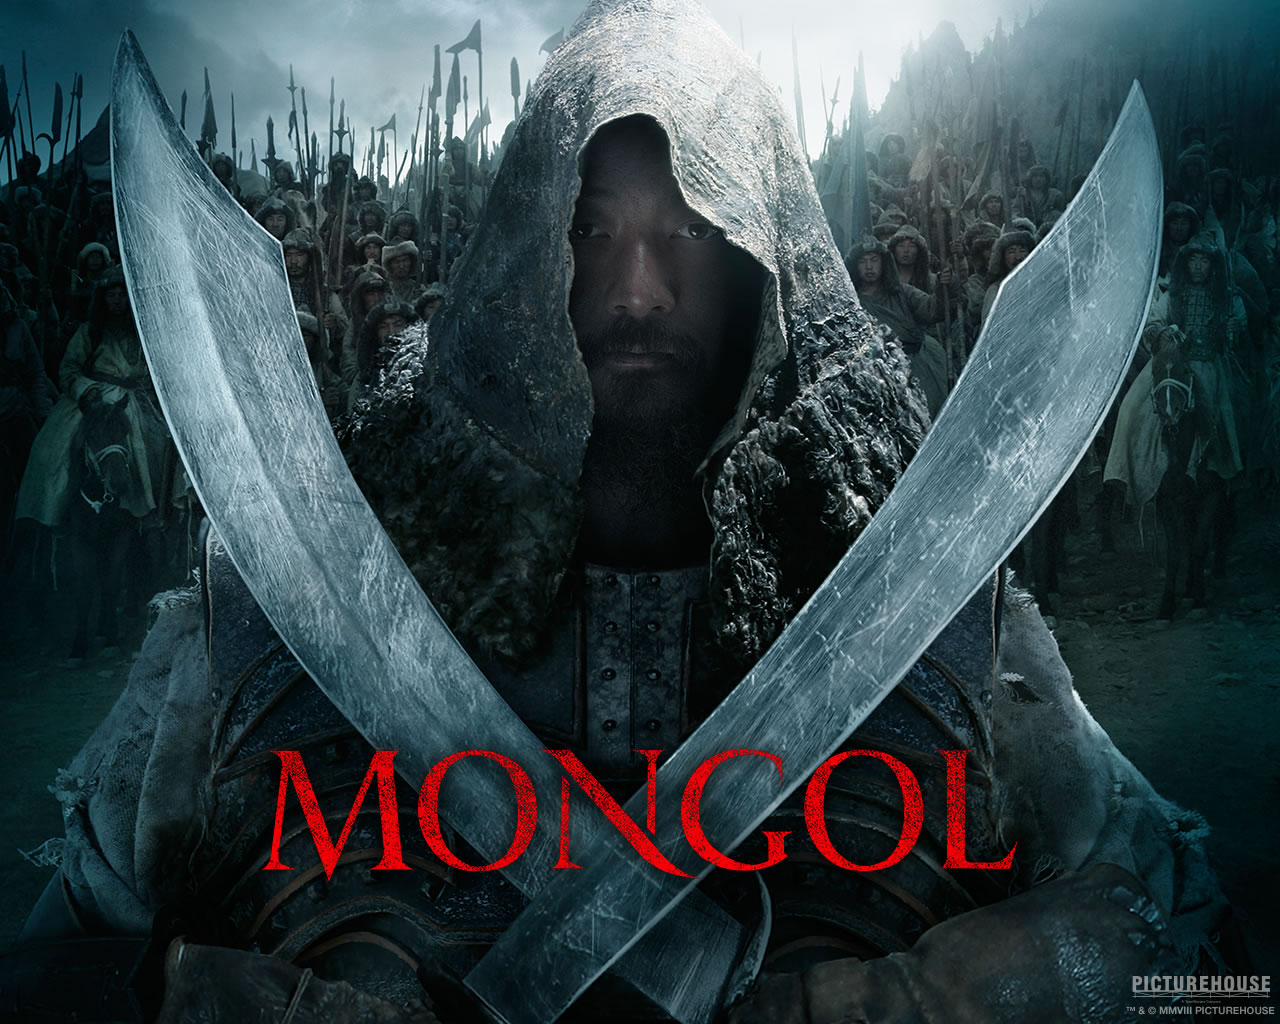 https://www.blackgate.com/wp-content/uploads/2010/08/mongol-sword2.jpg